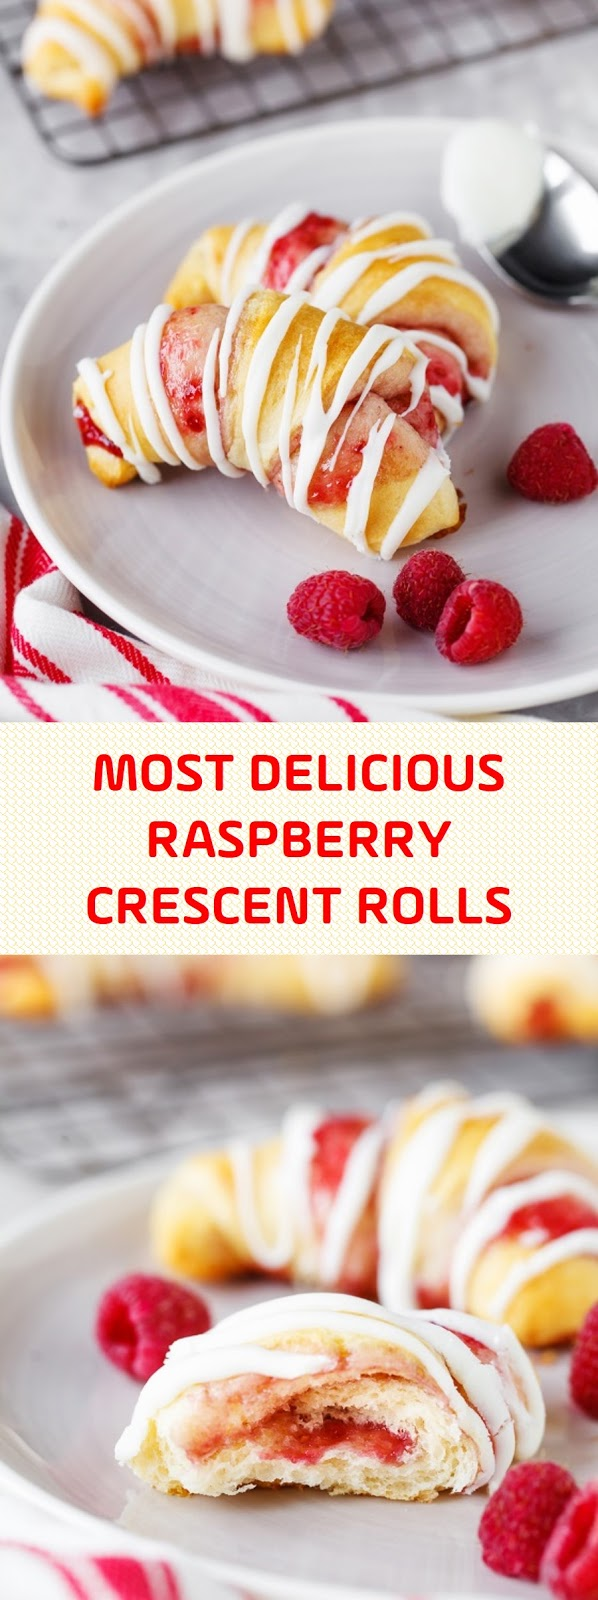 MOST DELICIOUS RASPBERRY CRESCENT ROLLS